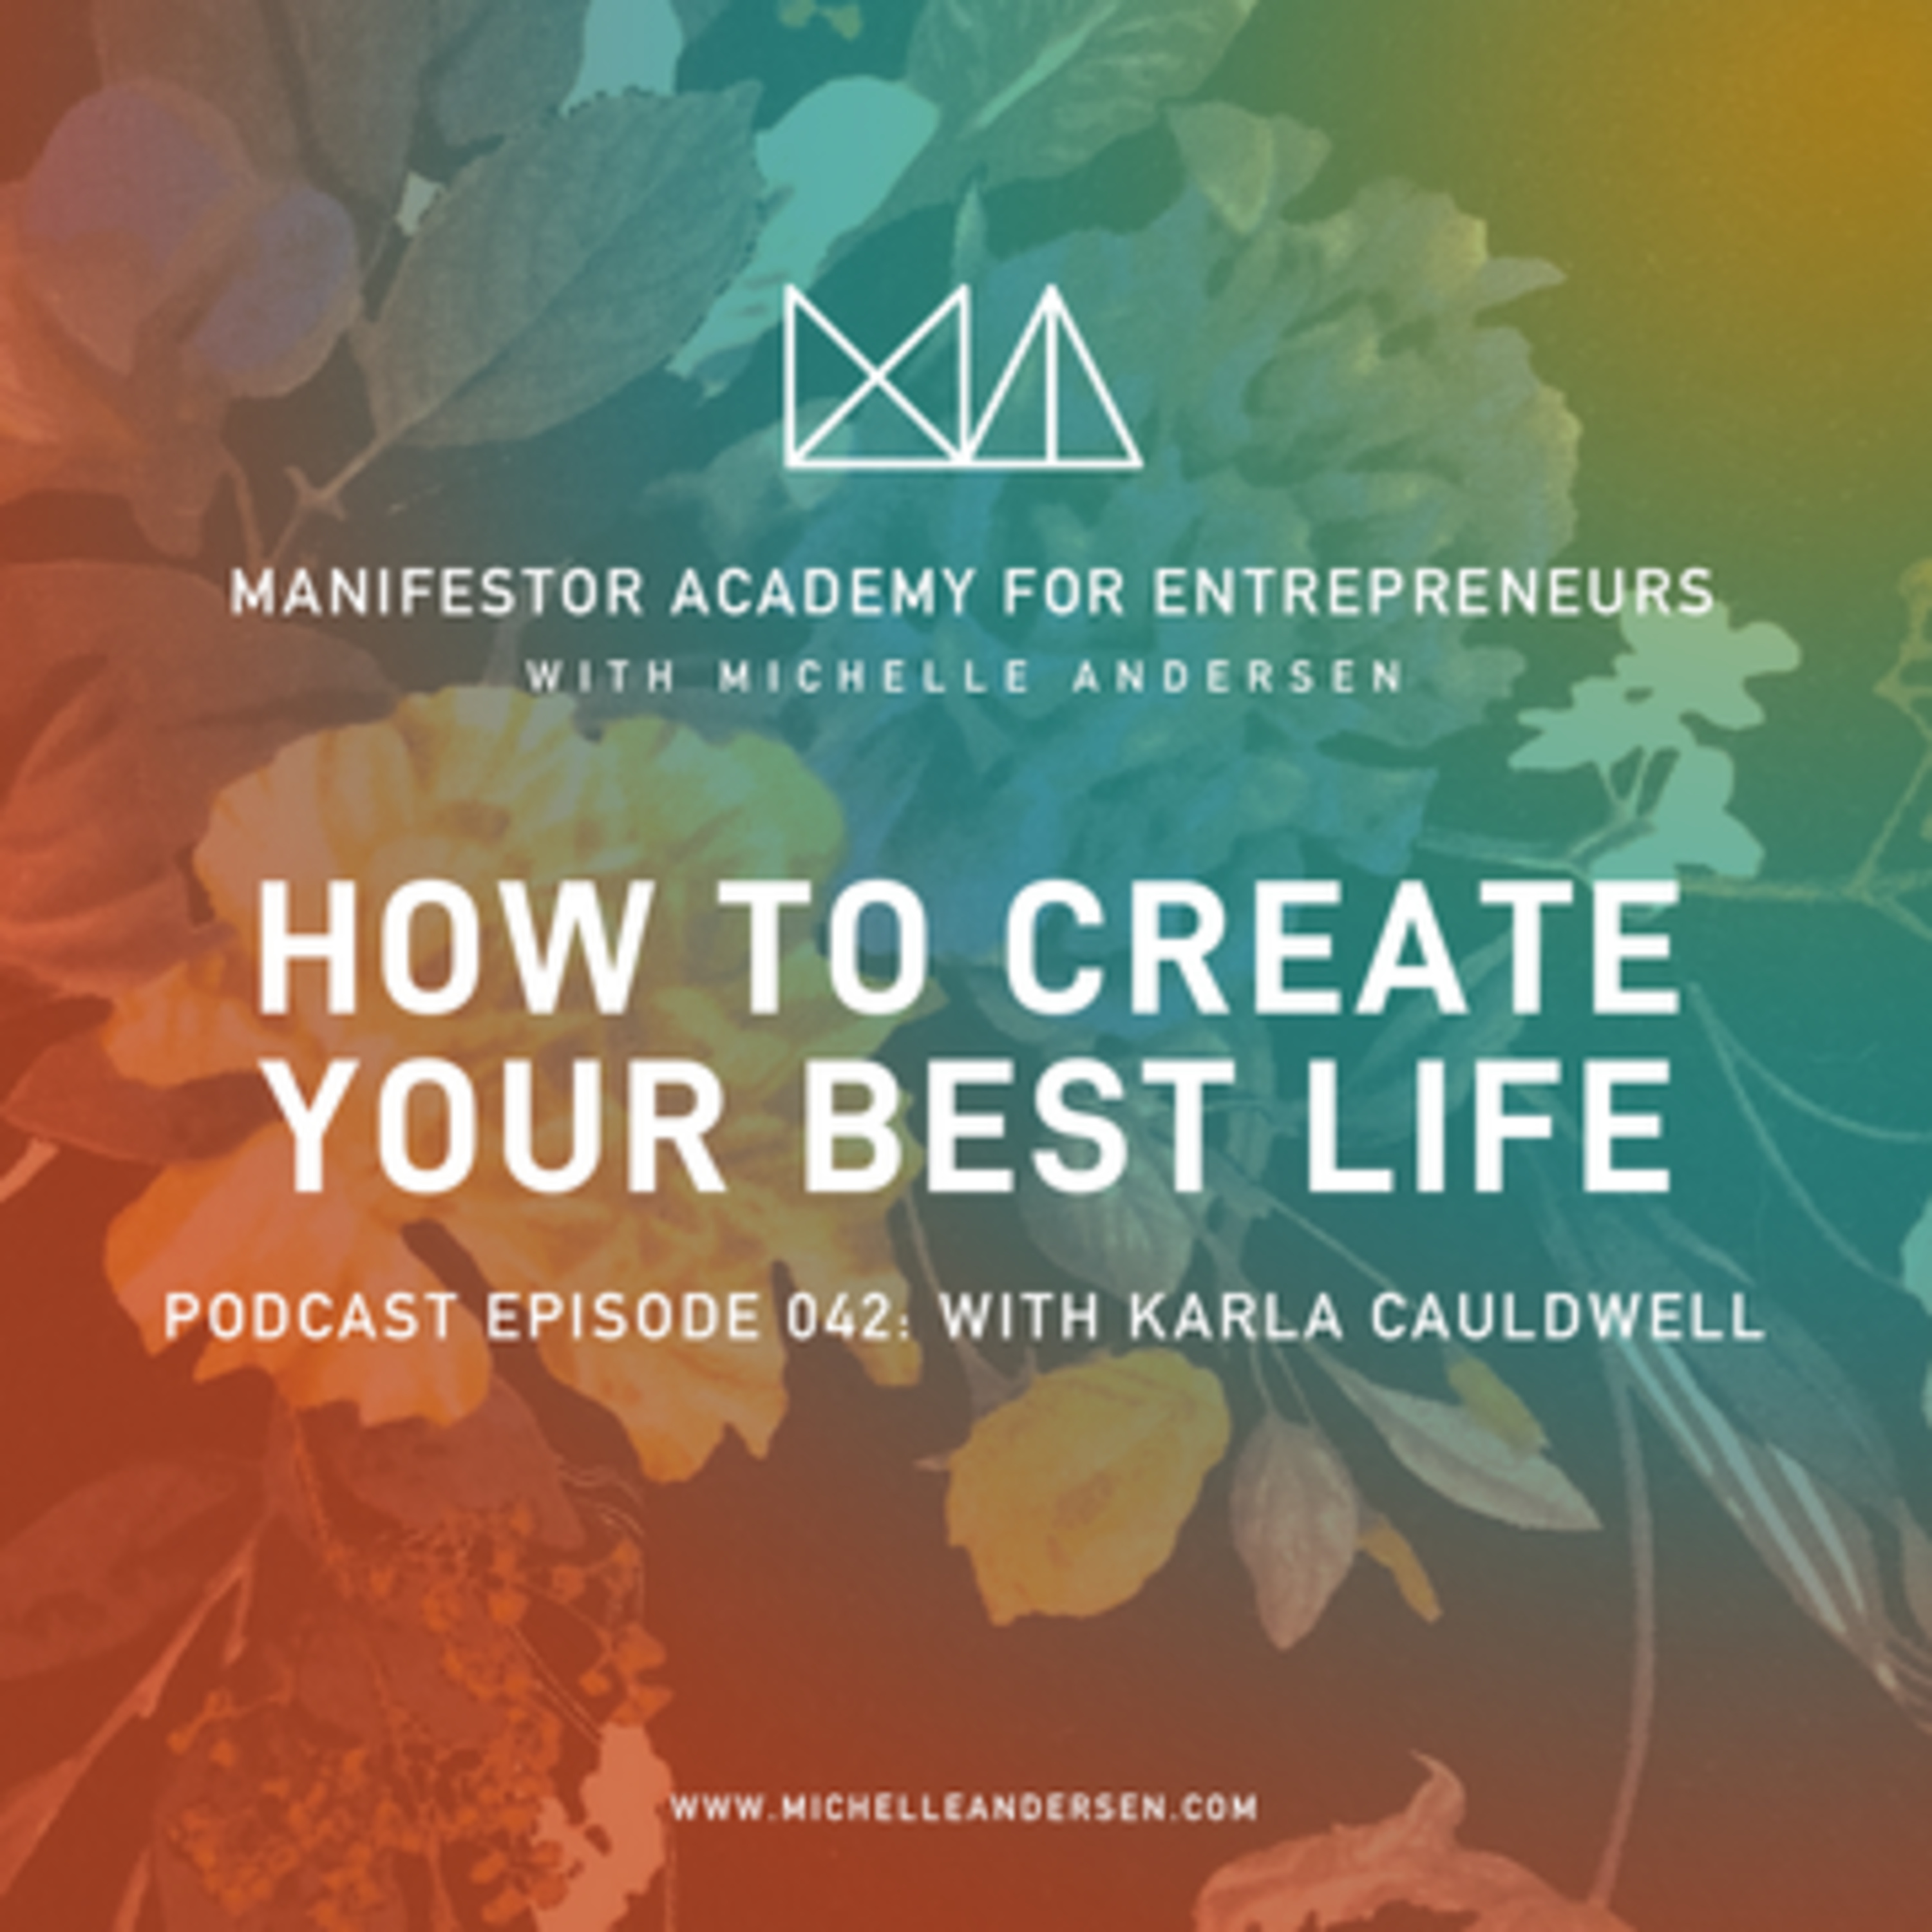 Karla Cauldwell on How to Create Your Best Life